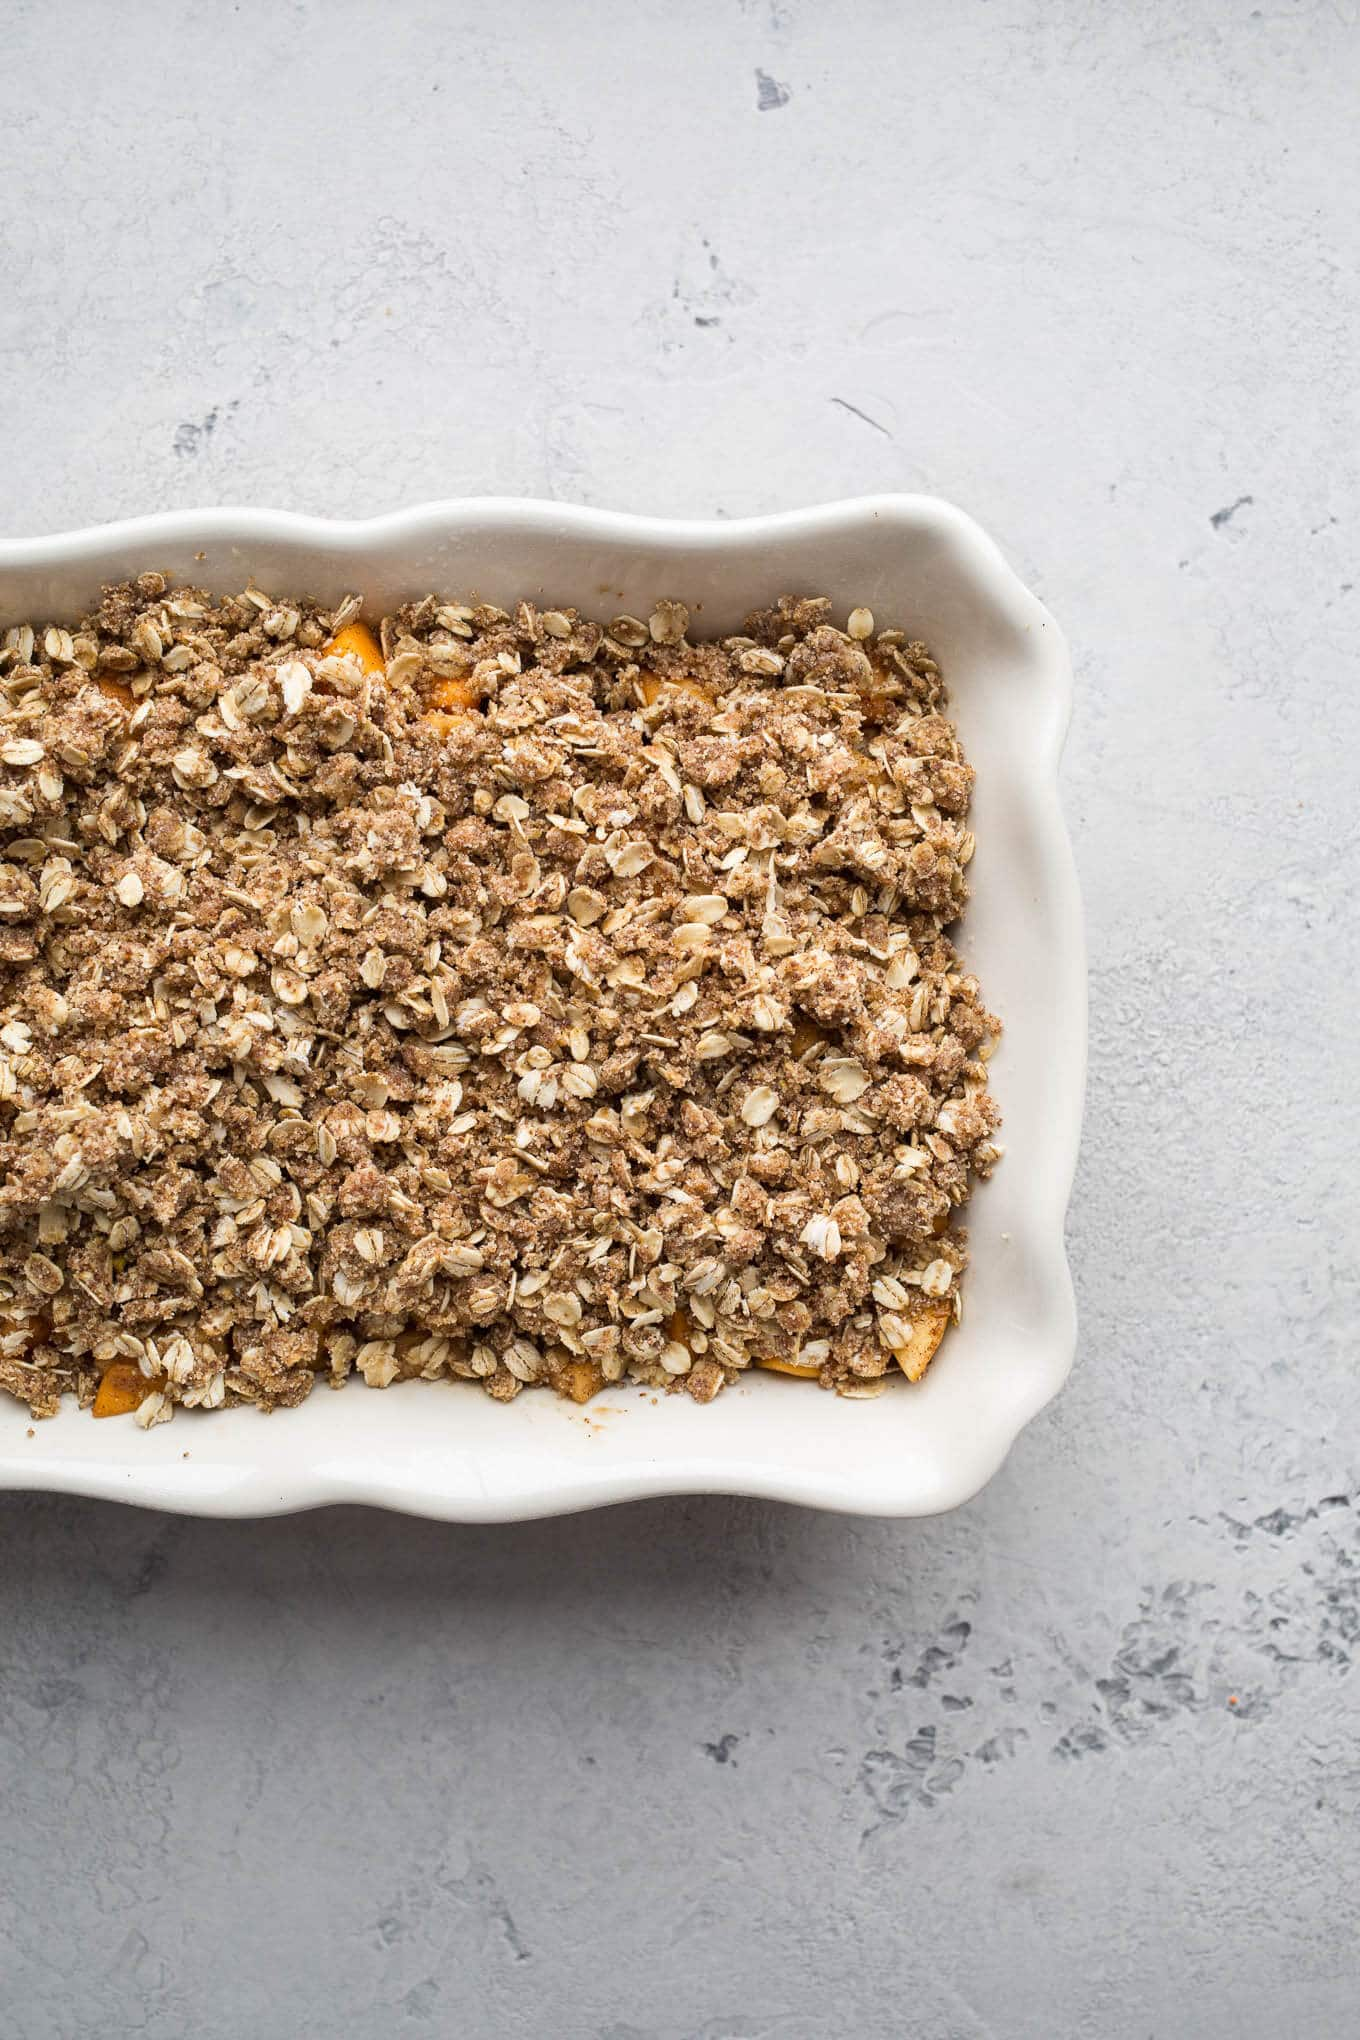 Apple Butternut Squash Crisp is an easy dessert that comes together in no time. Gluten-free, vegan, refined sugar-free.